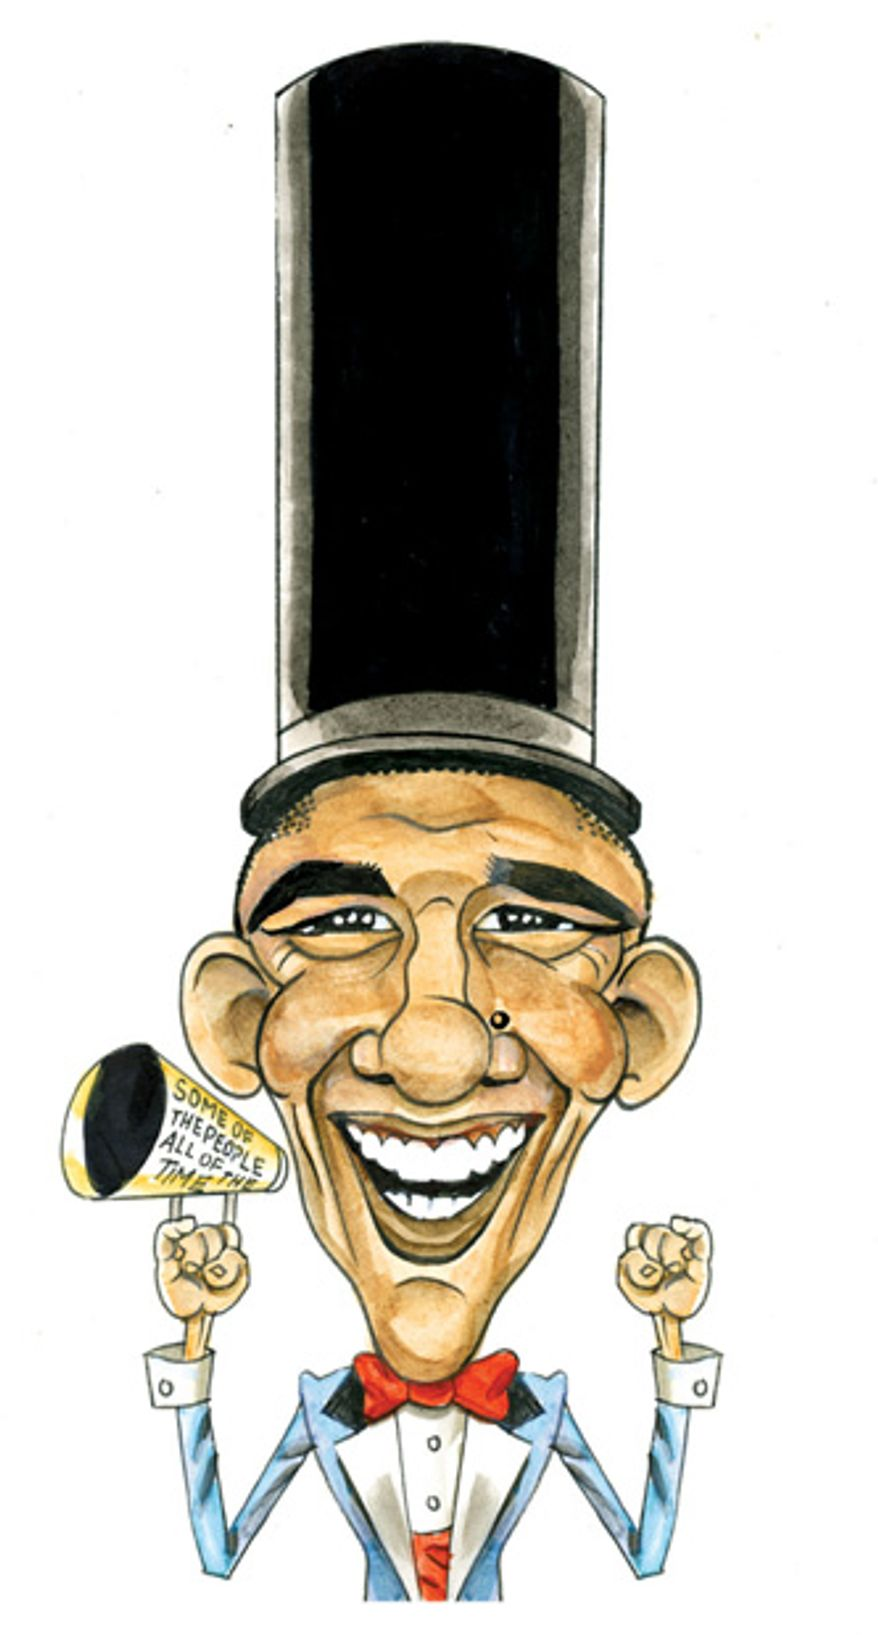 Illustration: Obamaham Lincoln by Alexander Hunter for The Washington Times